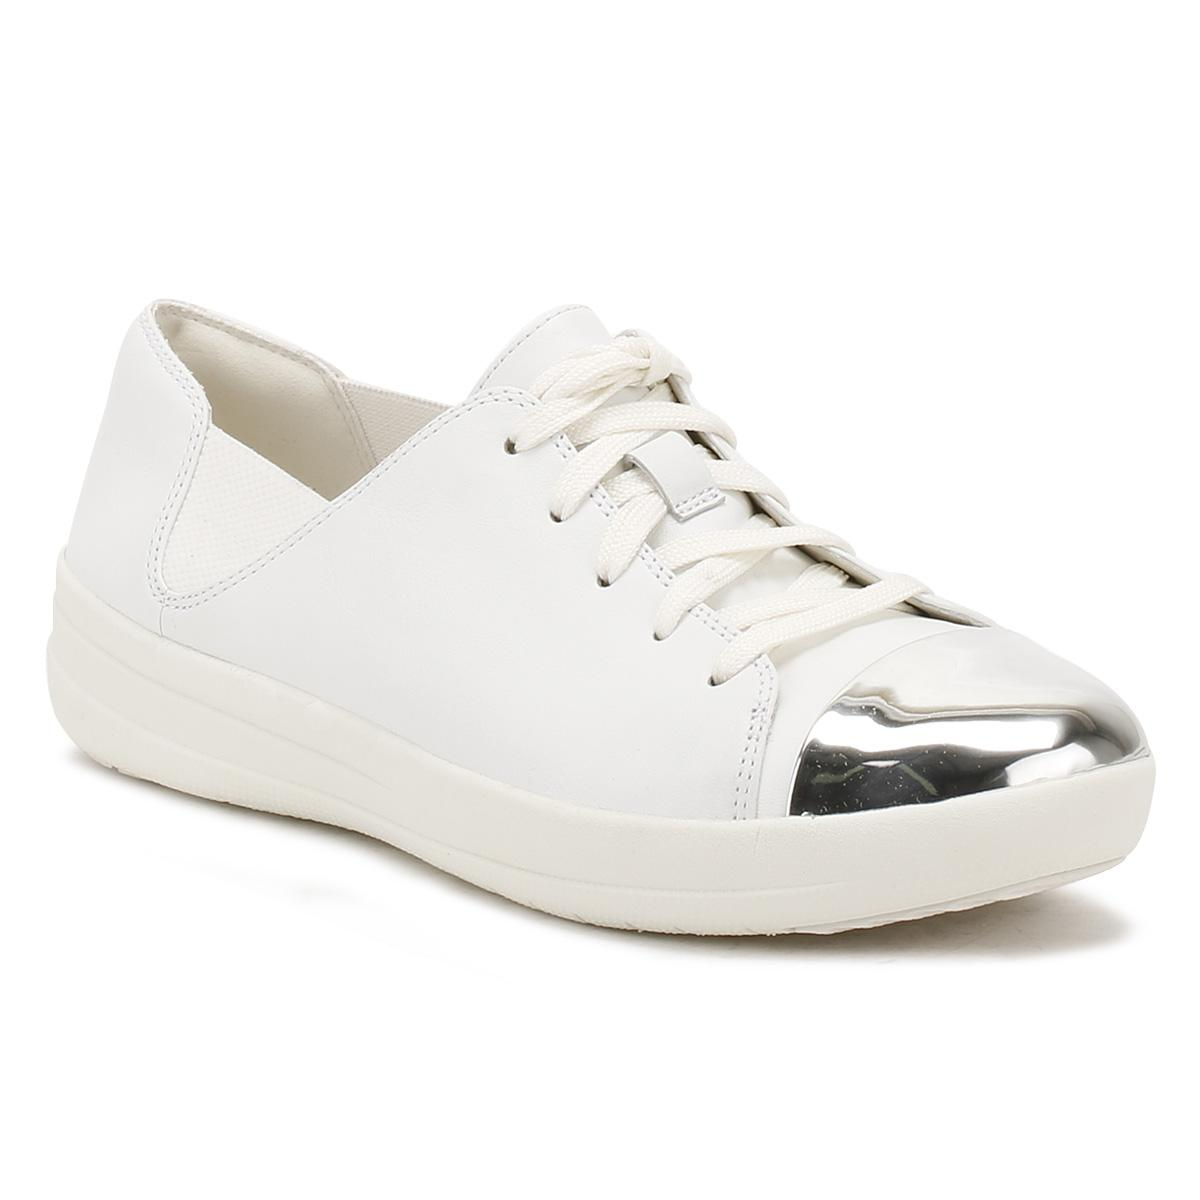 083b6847fd176 Fitflop Womens Urban White F-sporty Mirror-toe Trainers in White ...